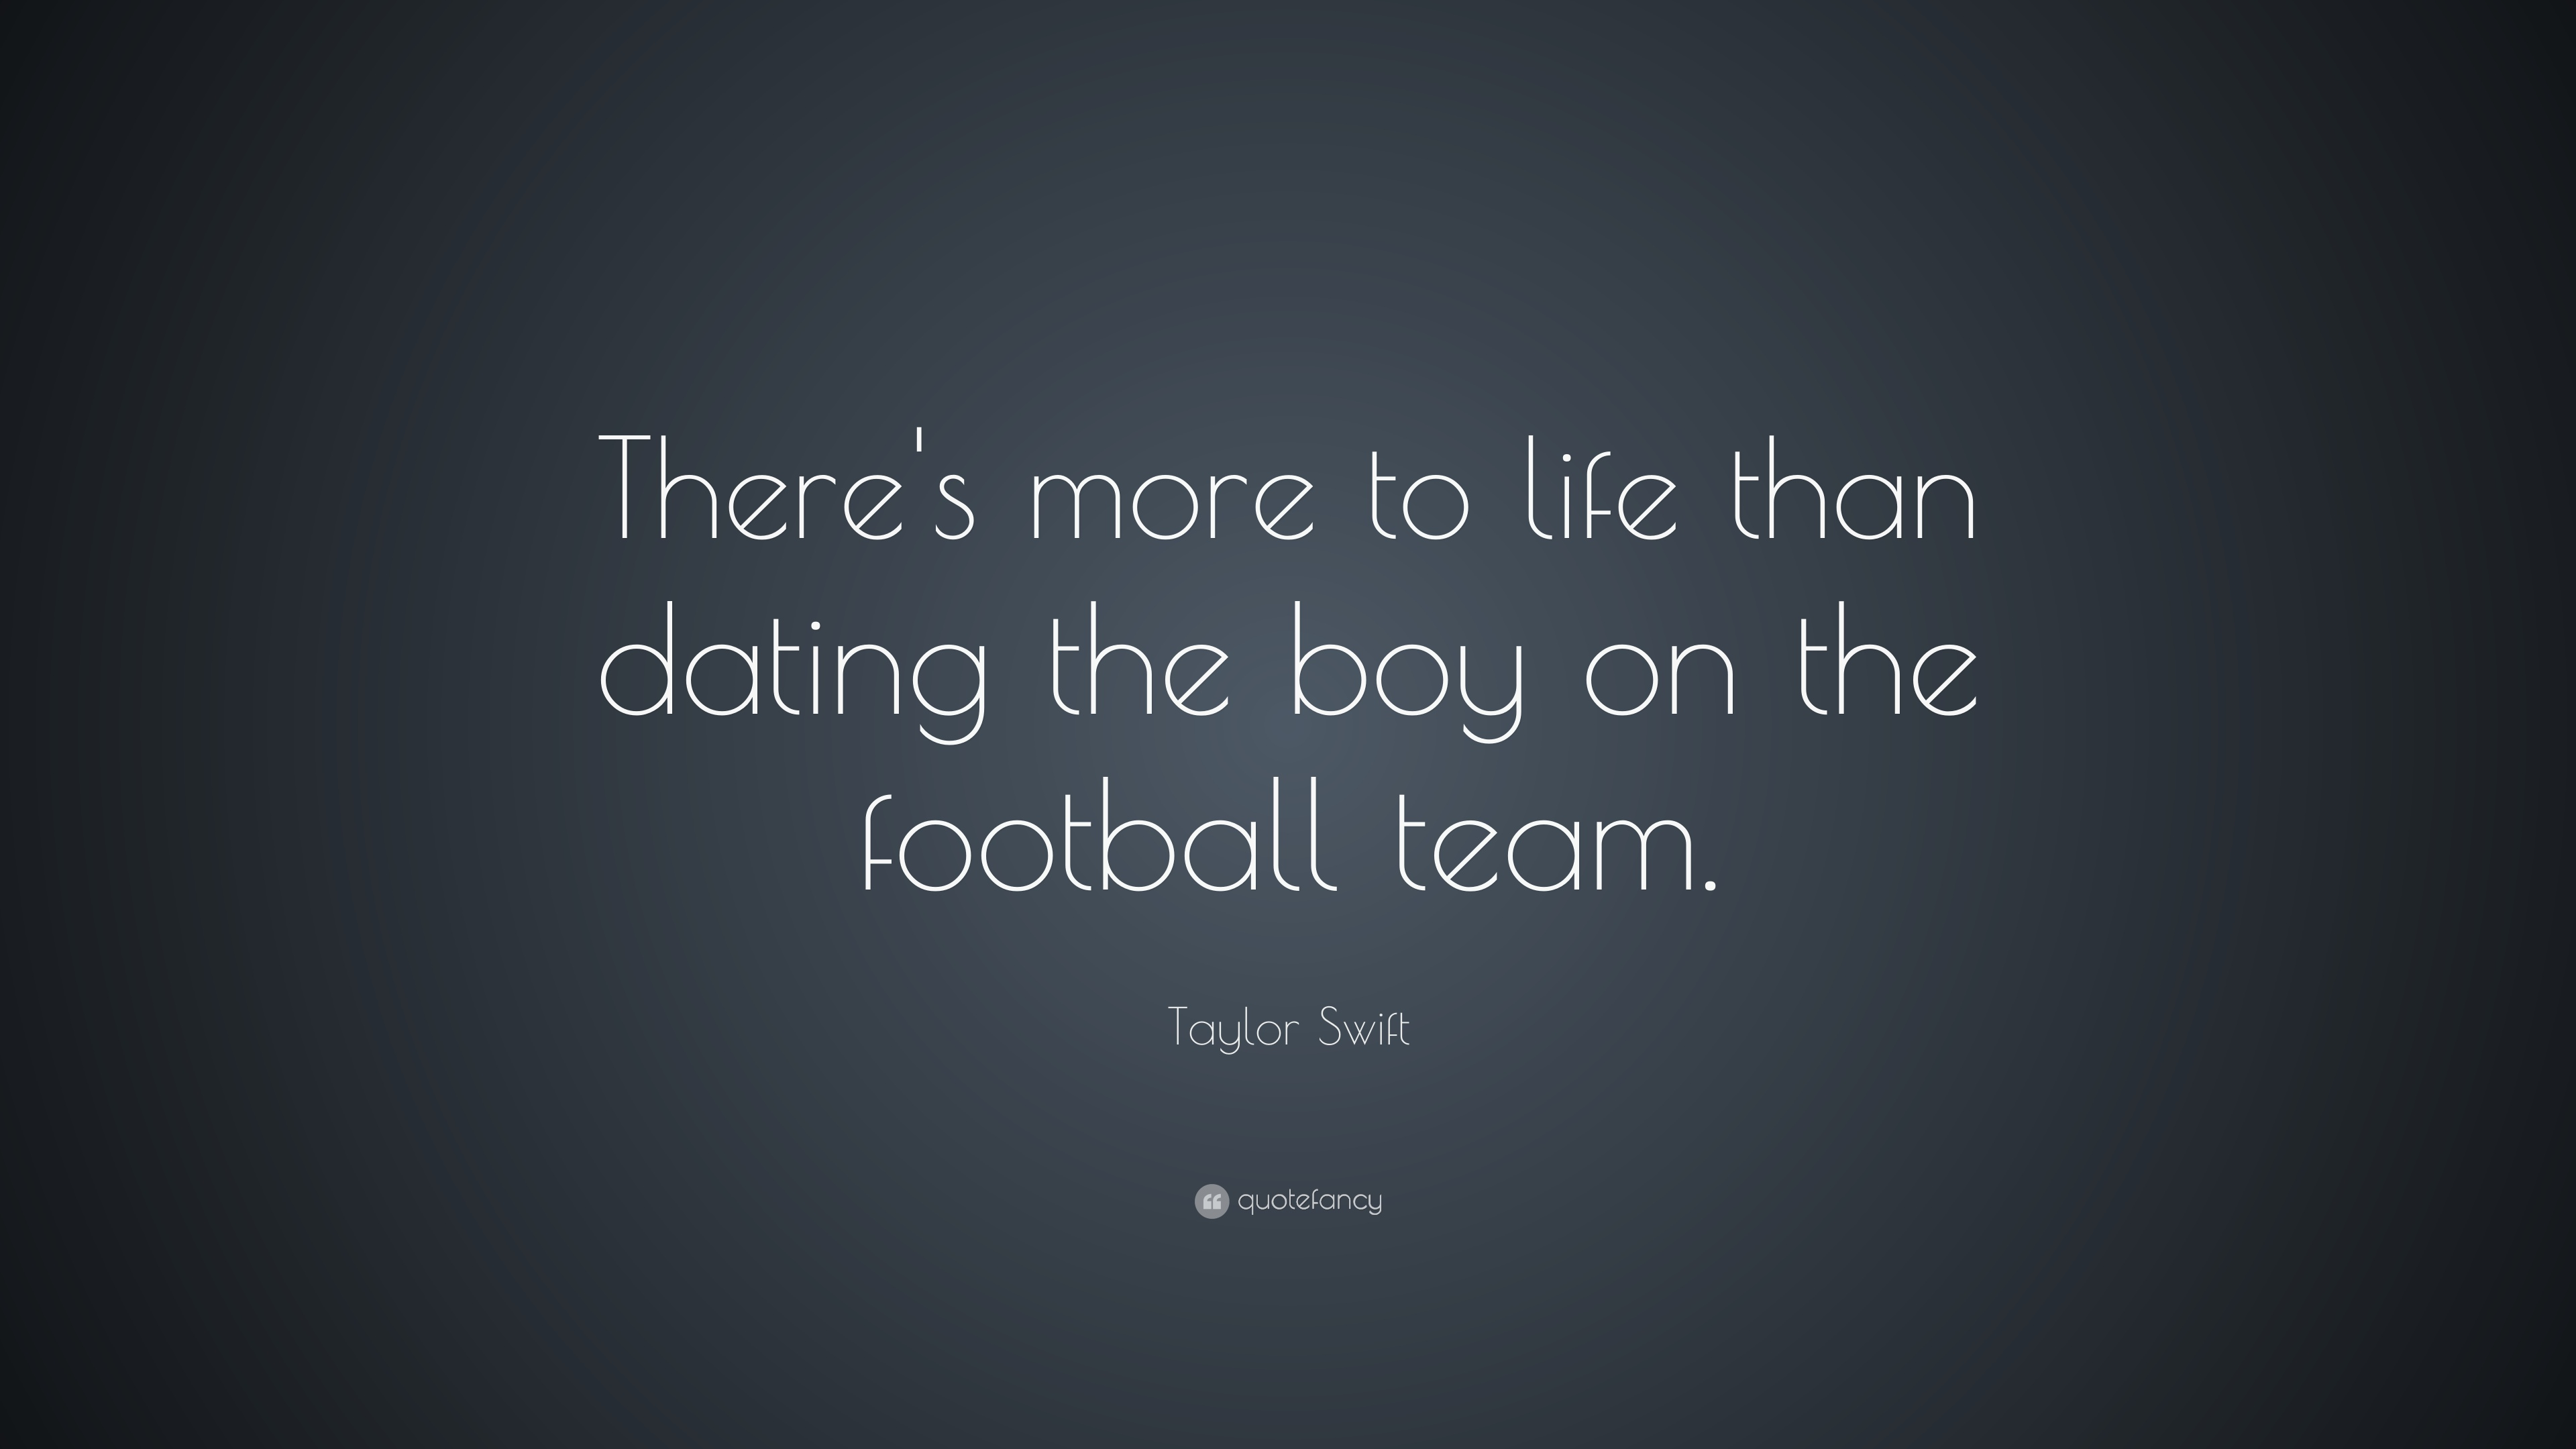 there more to life than dating the boy on the football team